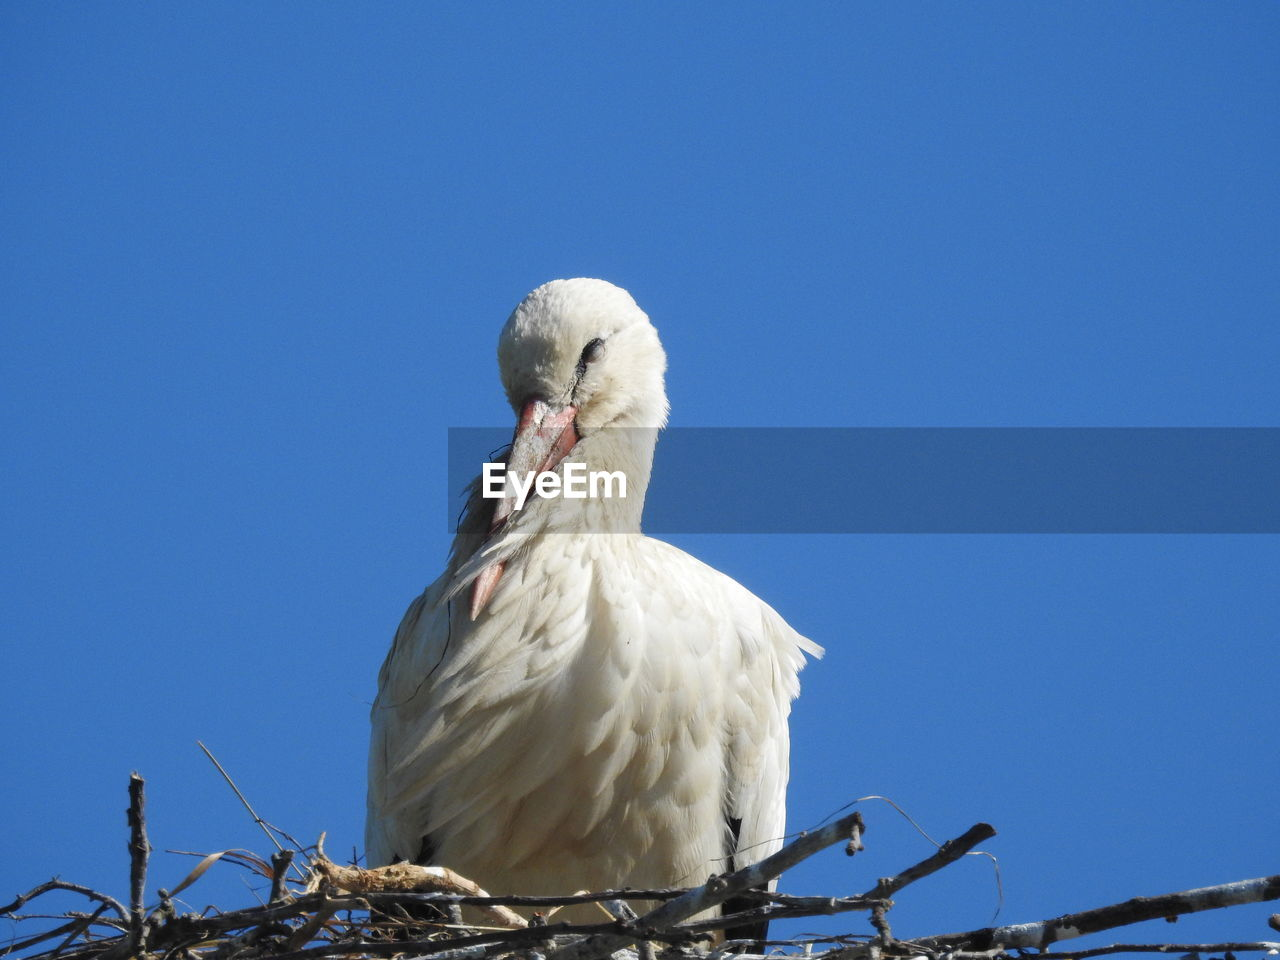 bird, sky, animal themes, vertebrate, animal, animals in the wild, clear sky, low angle view, animal wildlife, copy space, nature, one animal, white color, blue, no people, day, perching, outdoors, sunlight, close-up